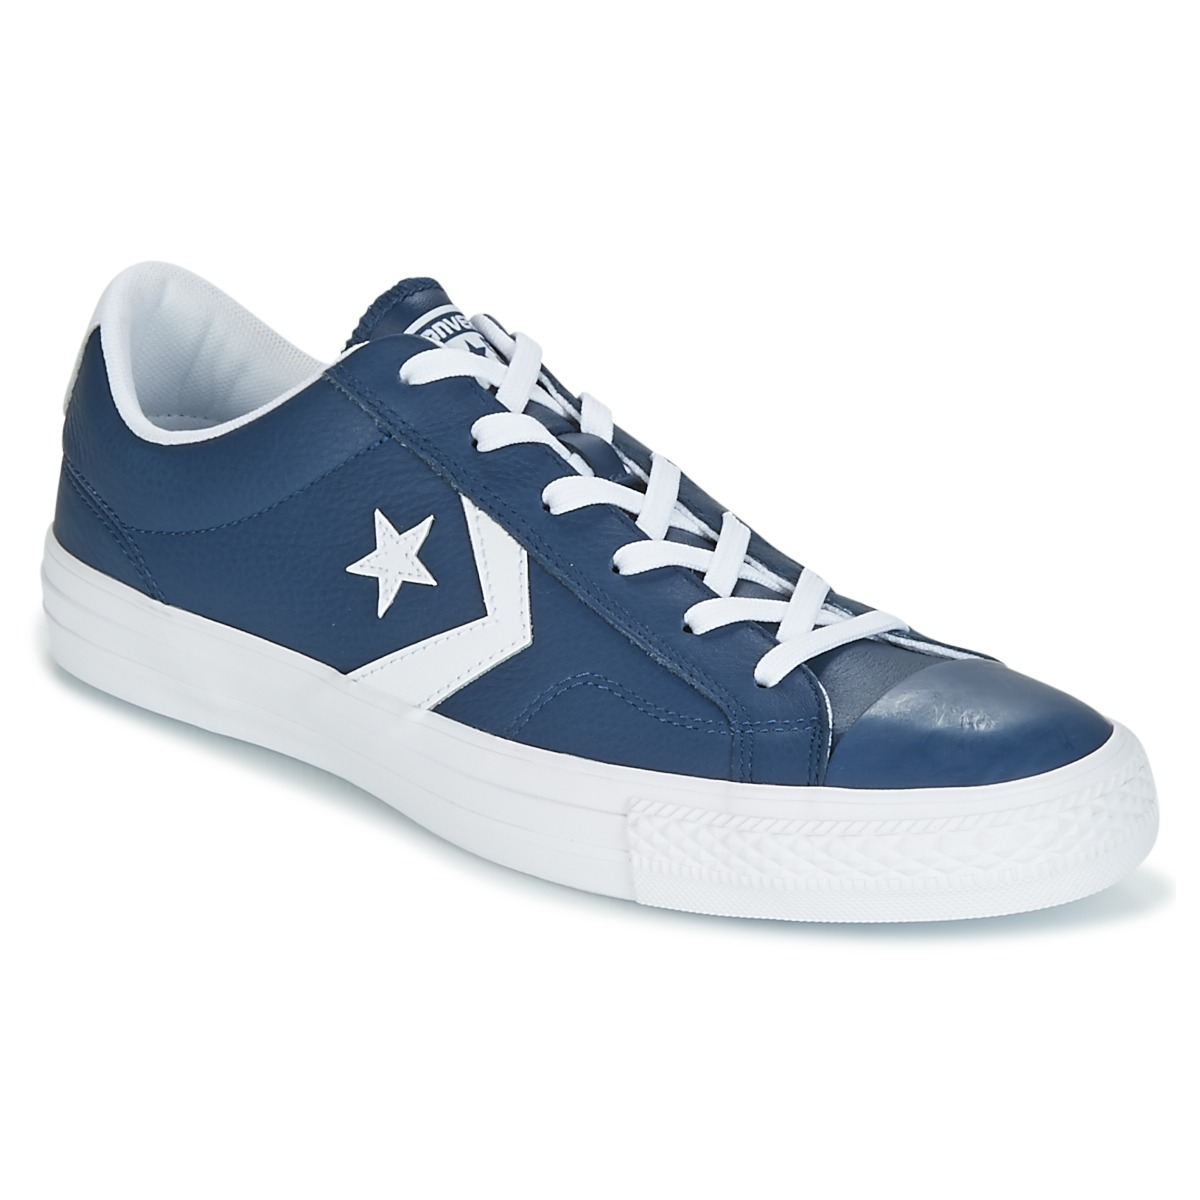 0daabffb459 Converse Nízke tenisky Star Player Ox Leather Essentials Converse ...